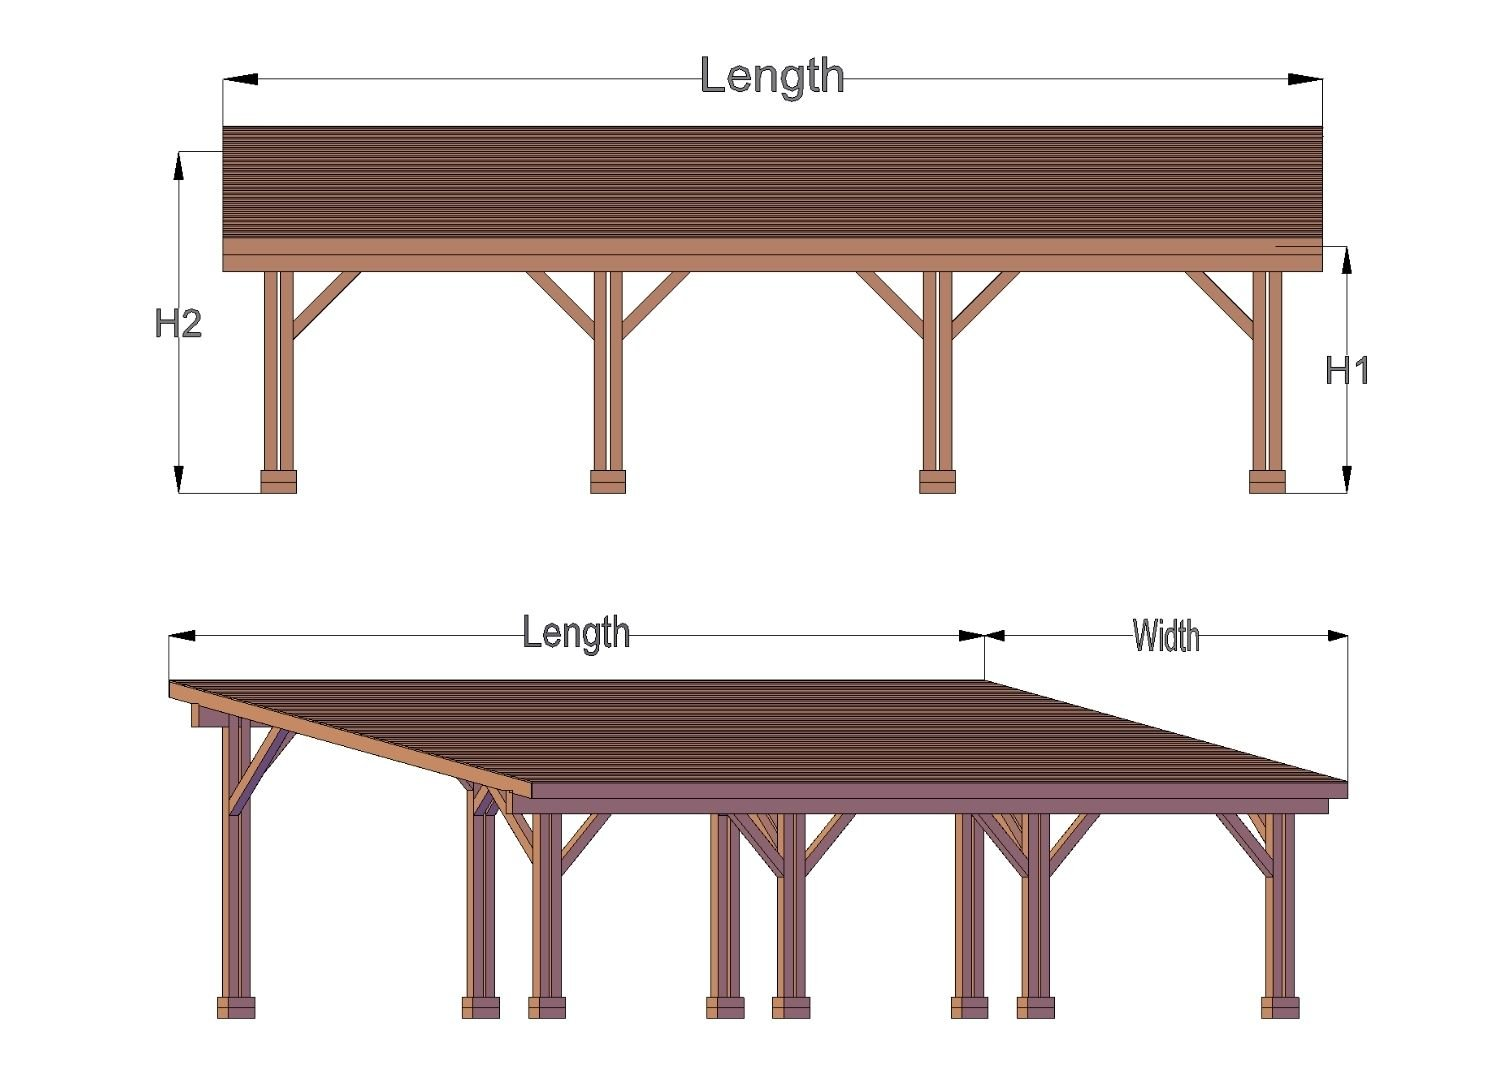 Sample drawings of the Carport Pavilion with three parking bays.